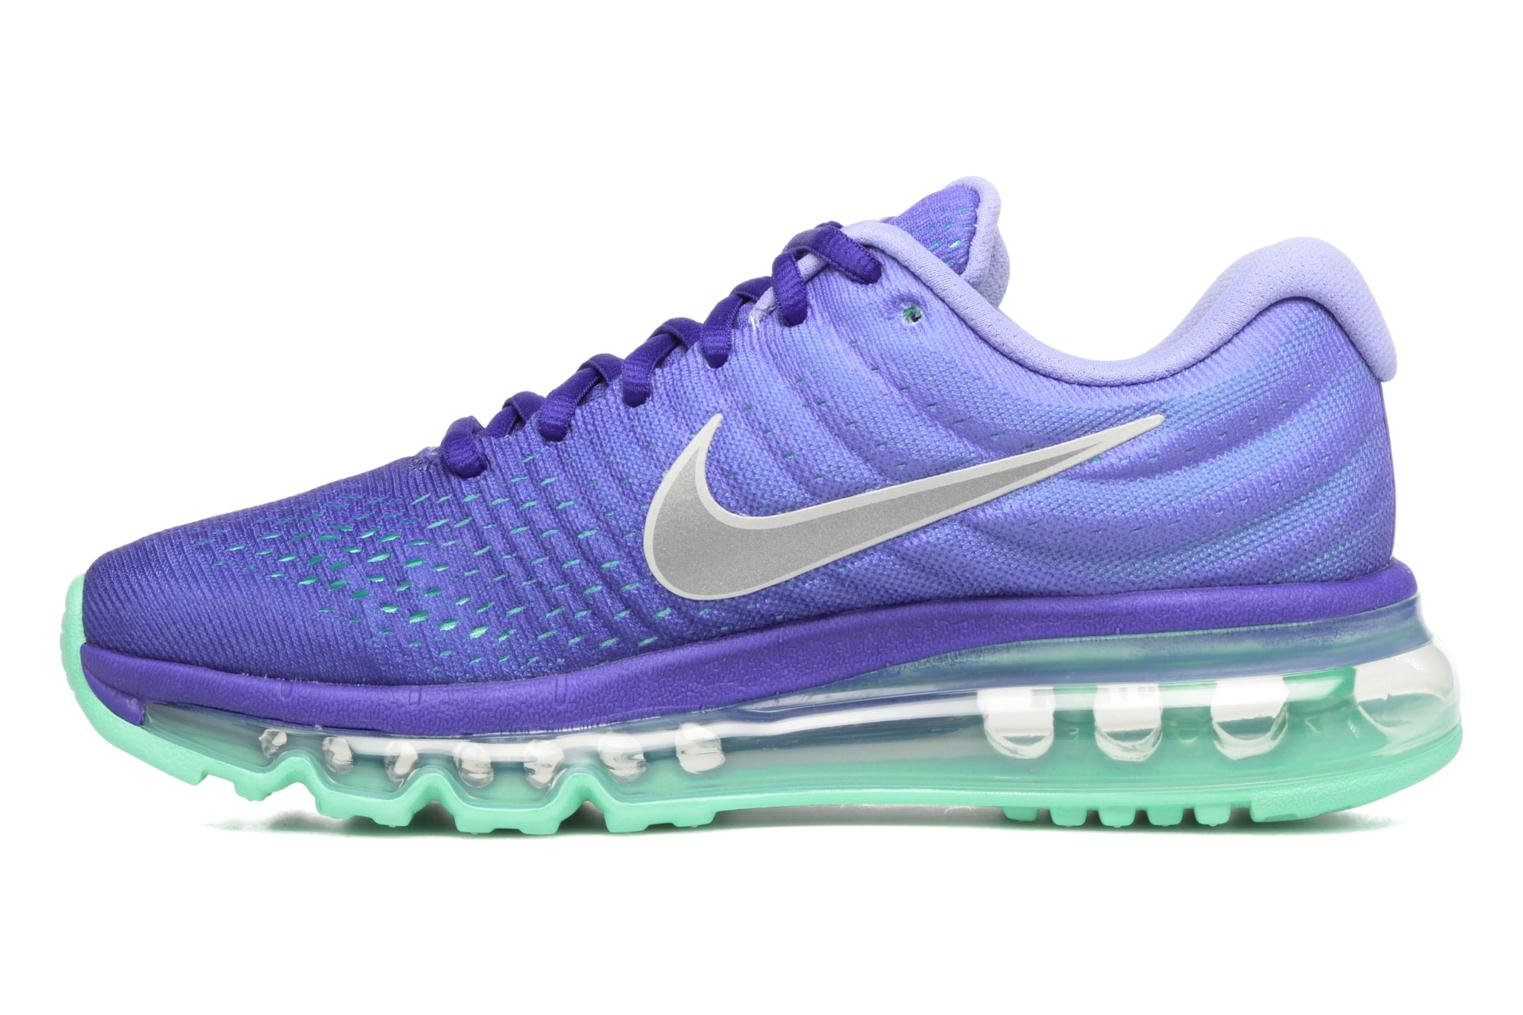 Wmns Nike Air Max 2017 Concord/white-persian violet